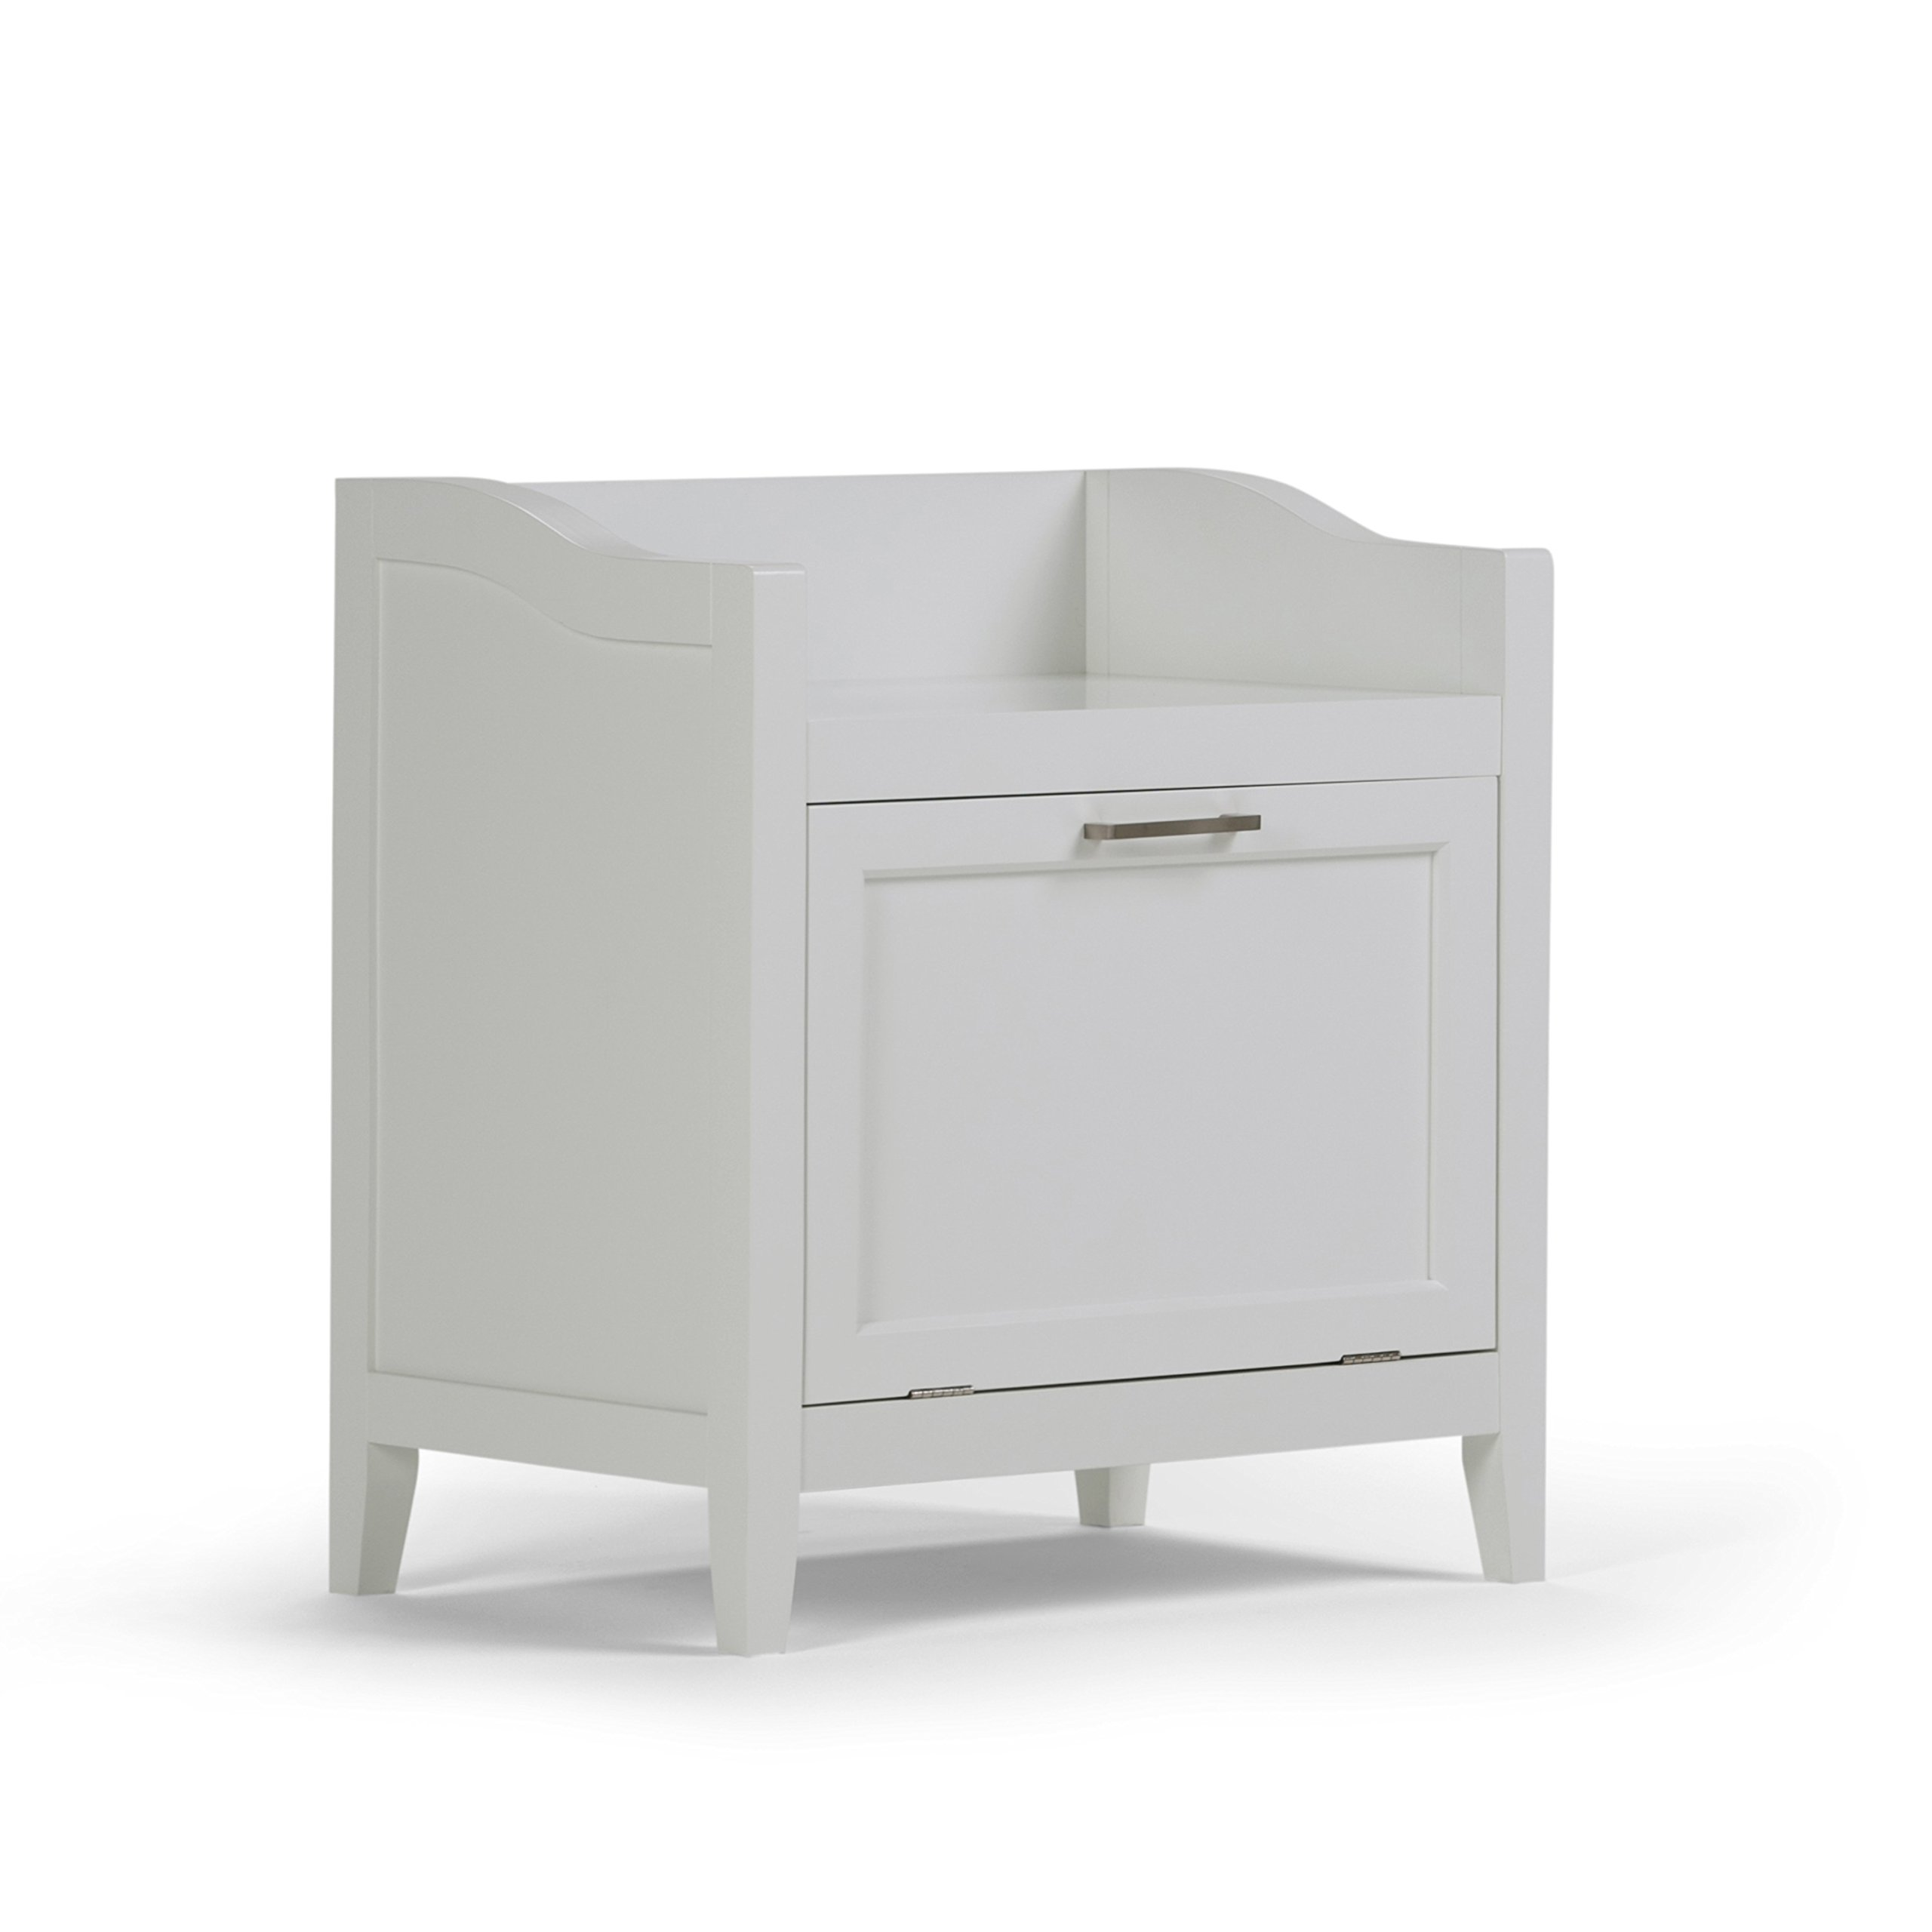 Simpli Home AXCBC-004-WH Evington Storage Hamper Bench, White by Simpli Home